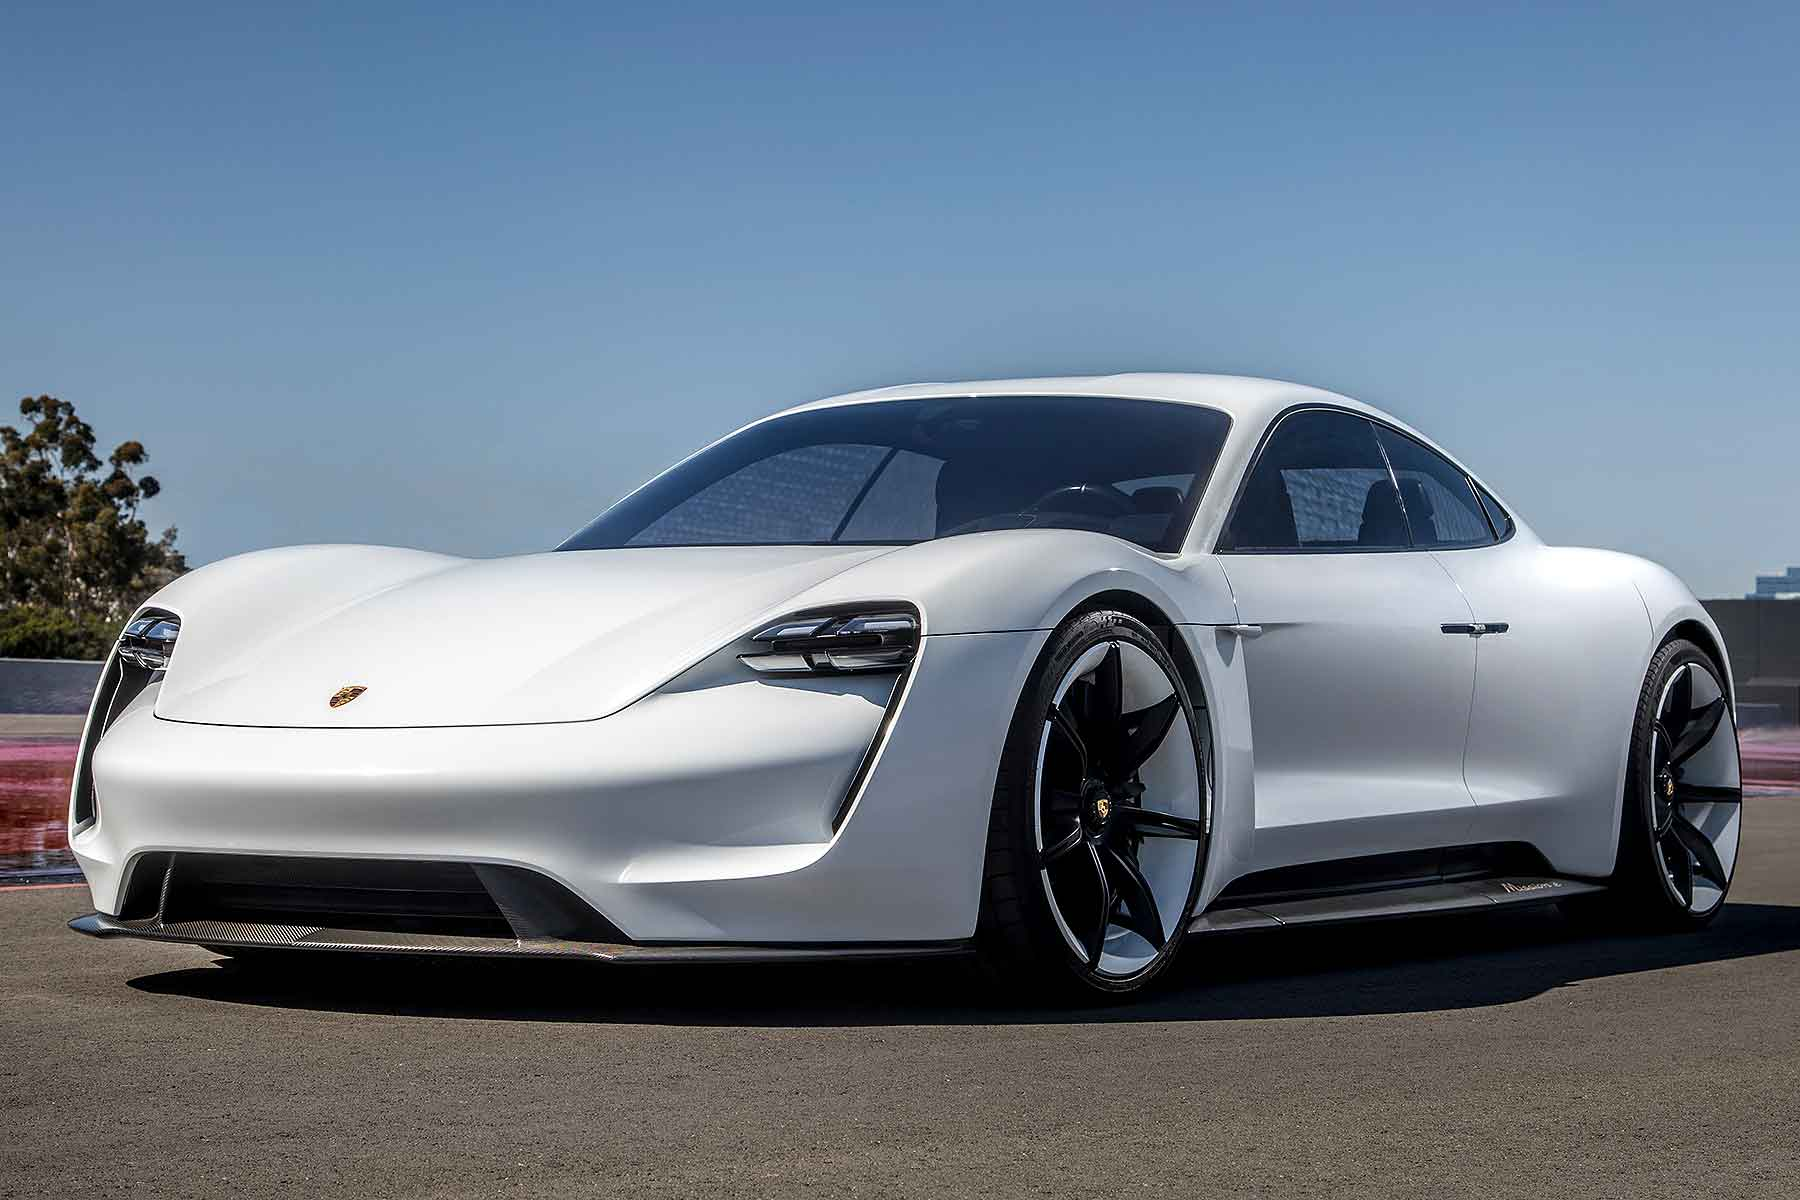 porsche boxster with Porsche Taycan Electric Car Named on 56610 also Voiture Renault furthermore 3854 2003 Porsche Boxster 10 additionally Porsche Taycan Electric Car Named further Shownews780342.